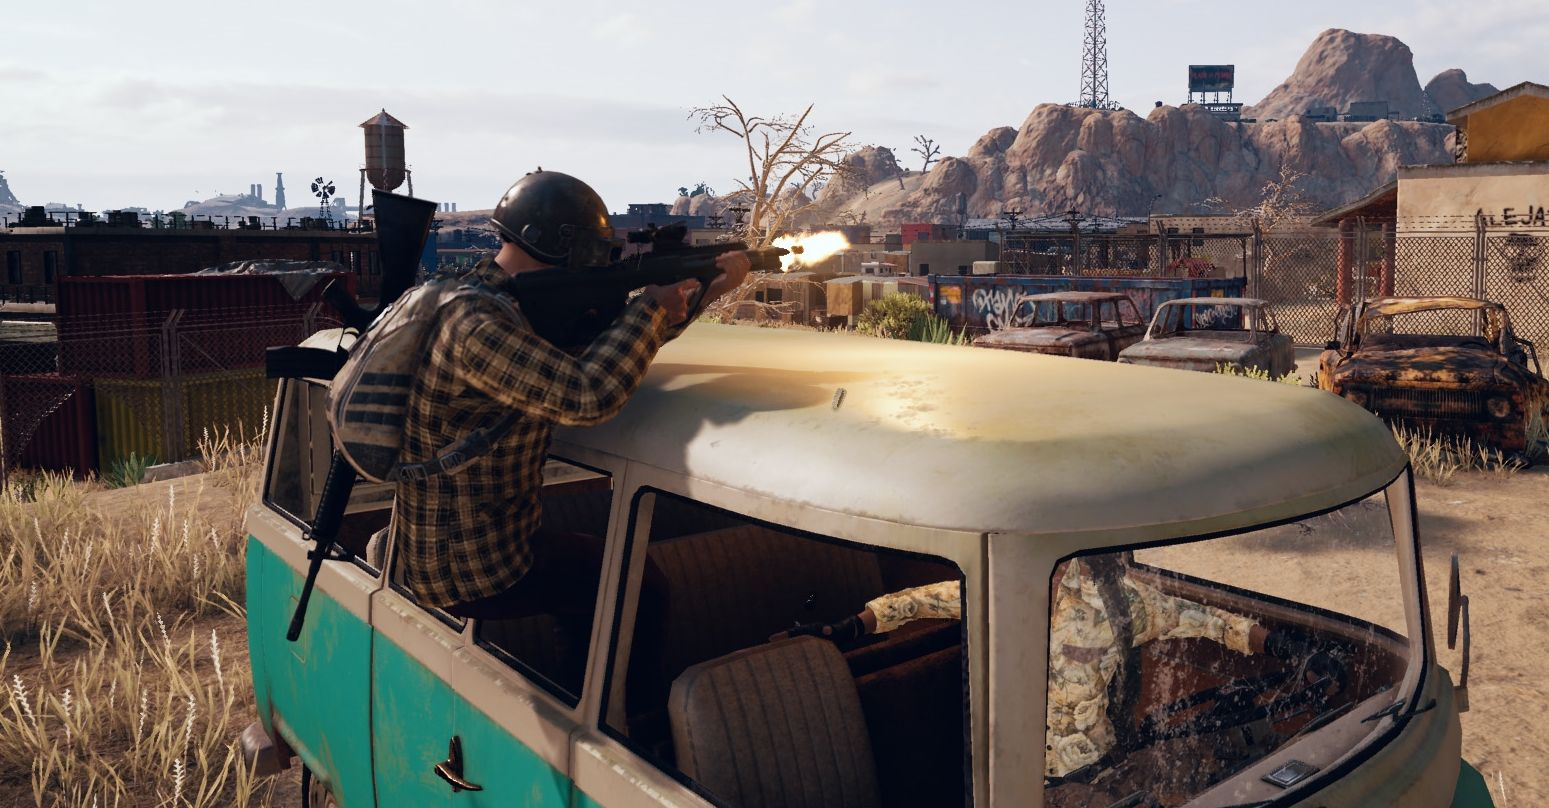 PUBG's Miramar map on Xbox test servers starting tomorrow